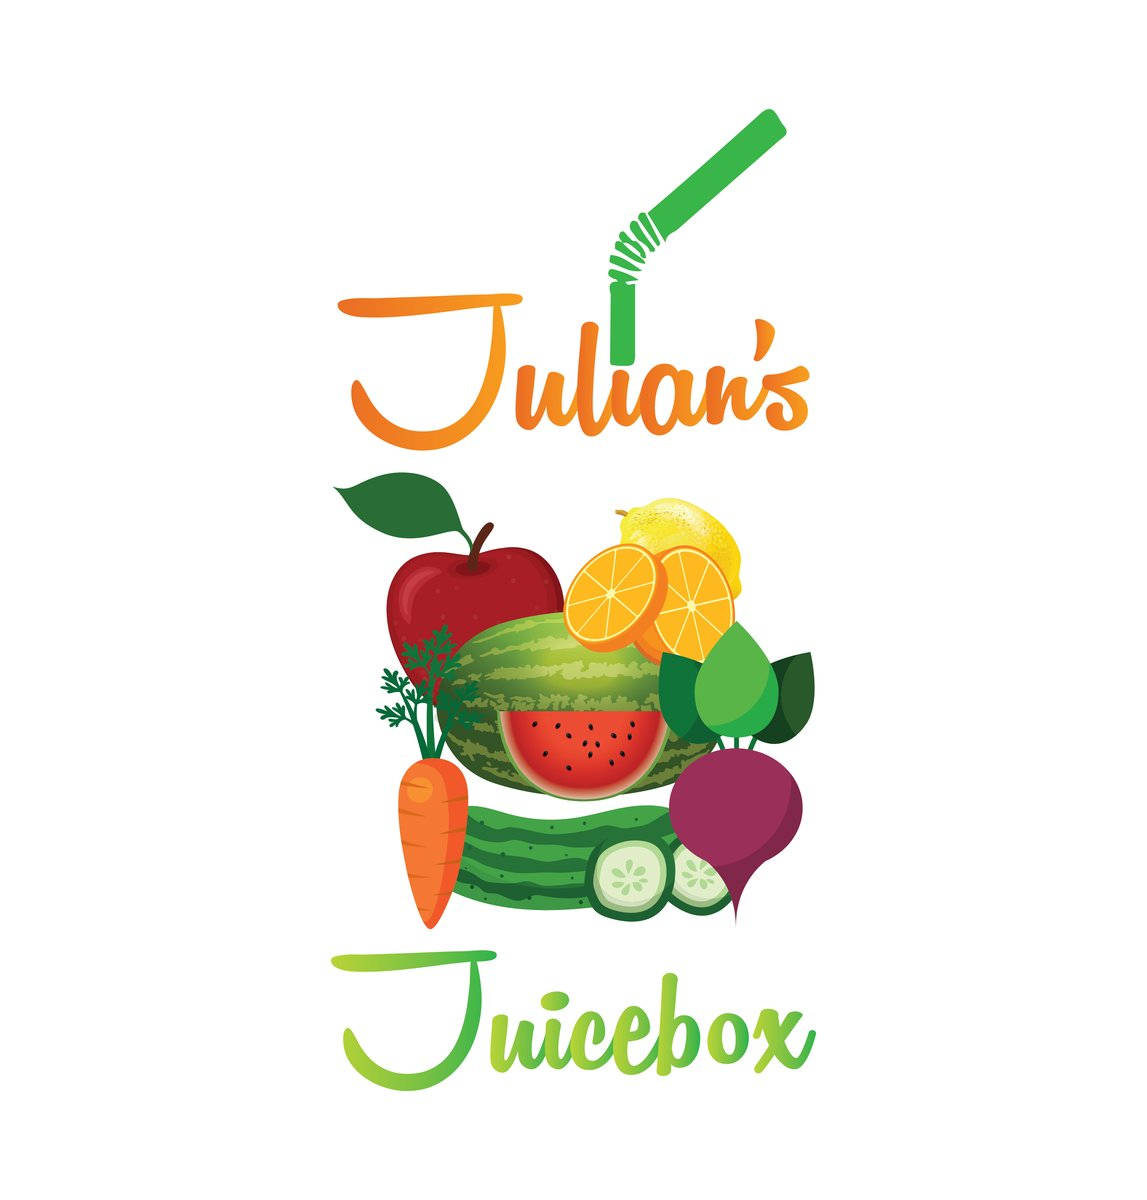 Julian's Juicebox